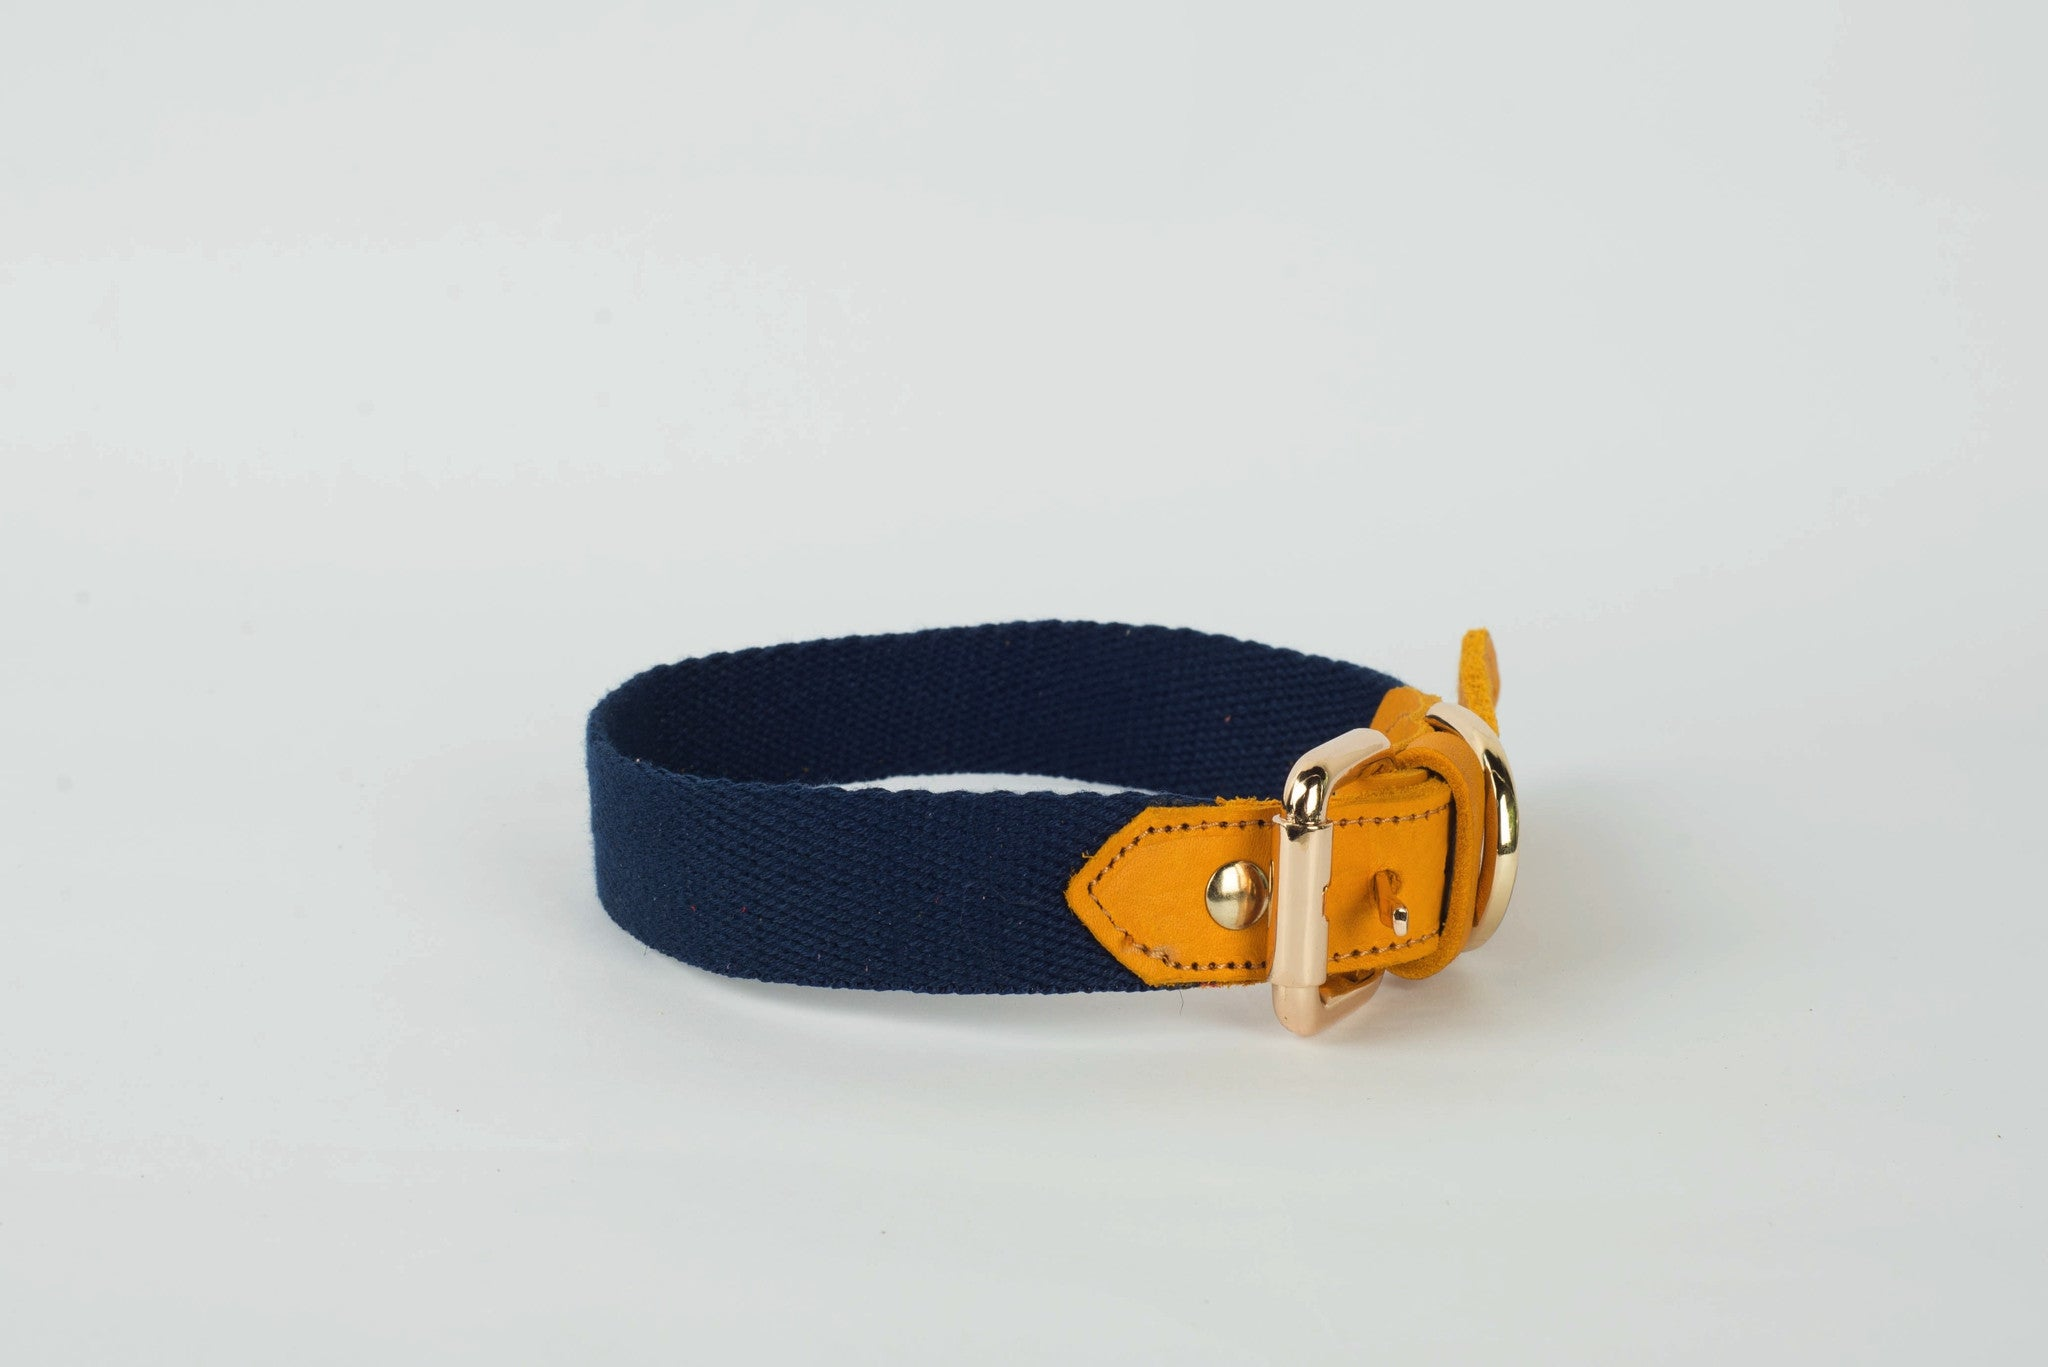 Halo Leather with Canvas Collar